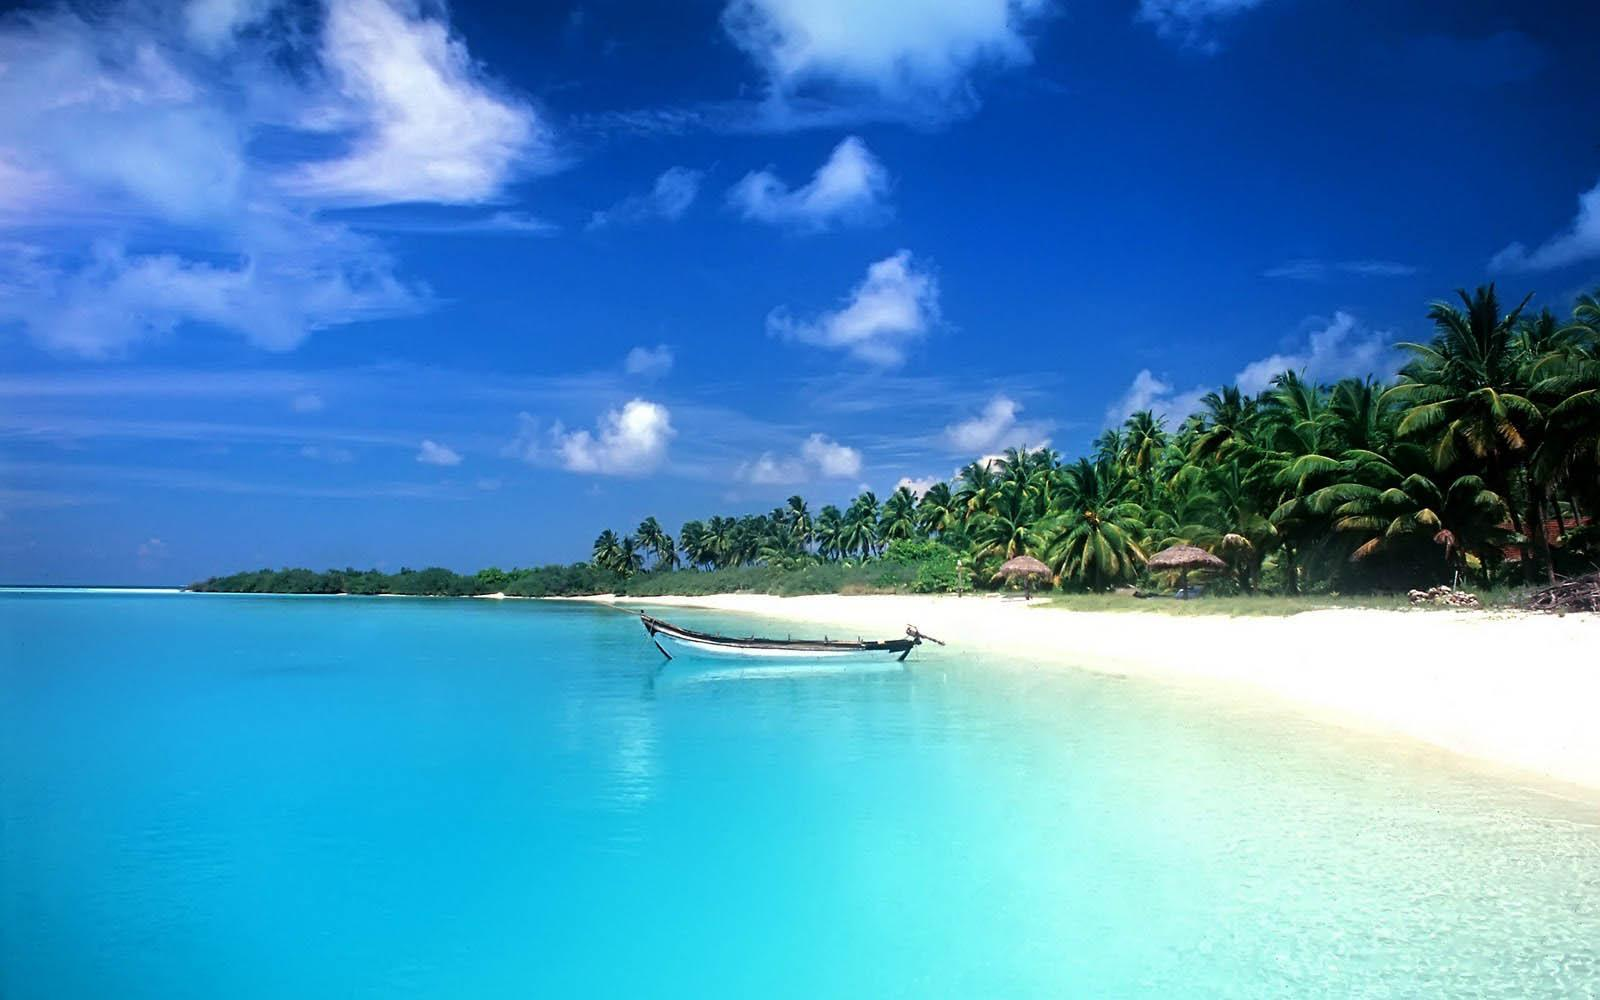 Tropical Beach Wallpaper Desktop Free Desktop 8 HD Wallpapers ...